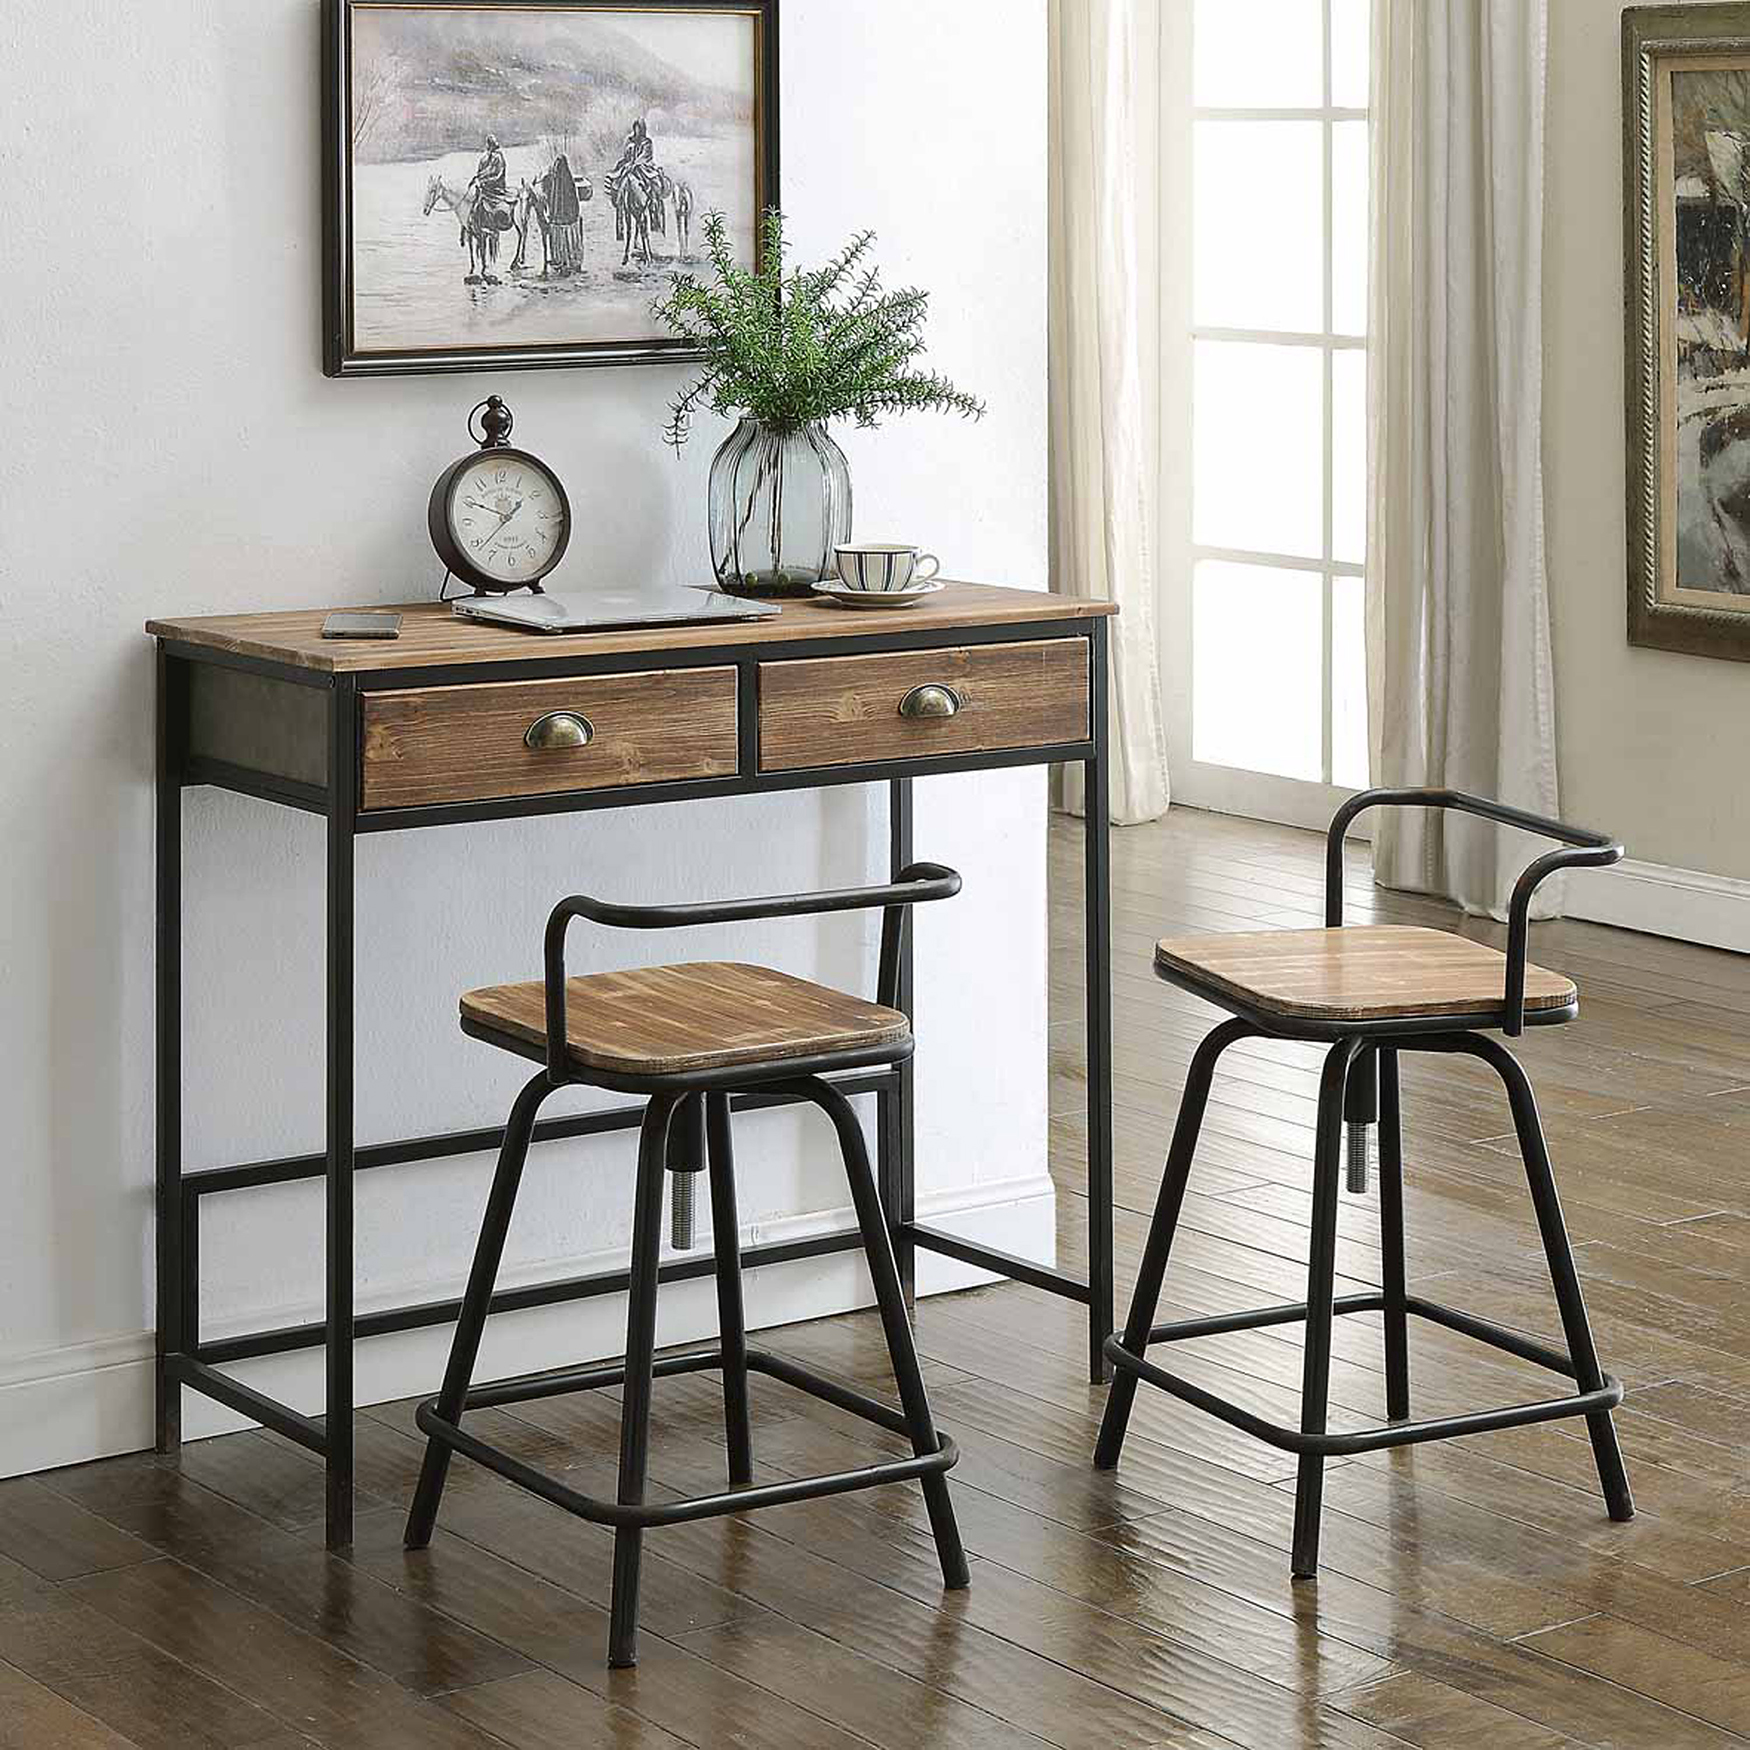 Urban Loft Breakfast Table with 2 Swivel Stools by 4D Concepts, NATURAL WOOD